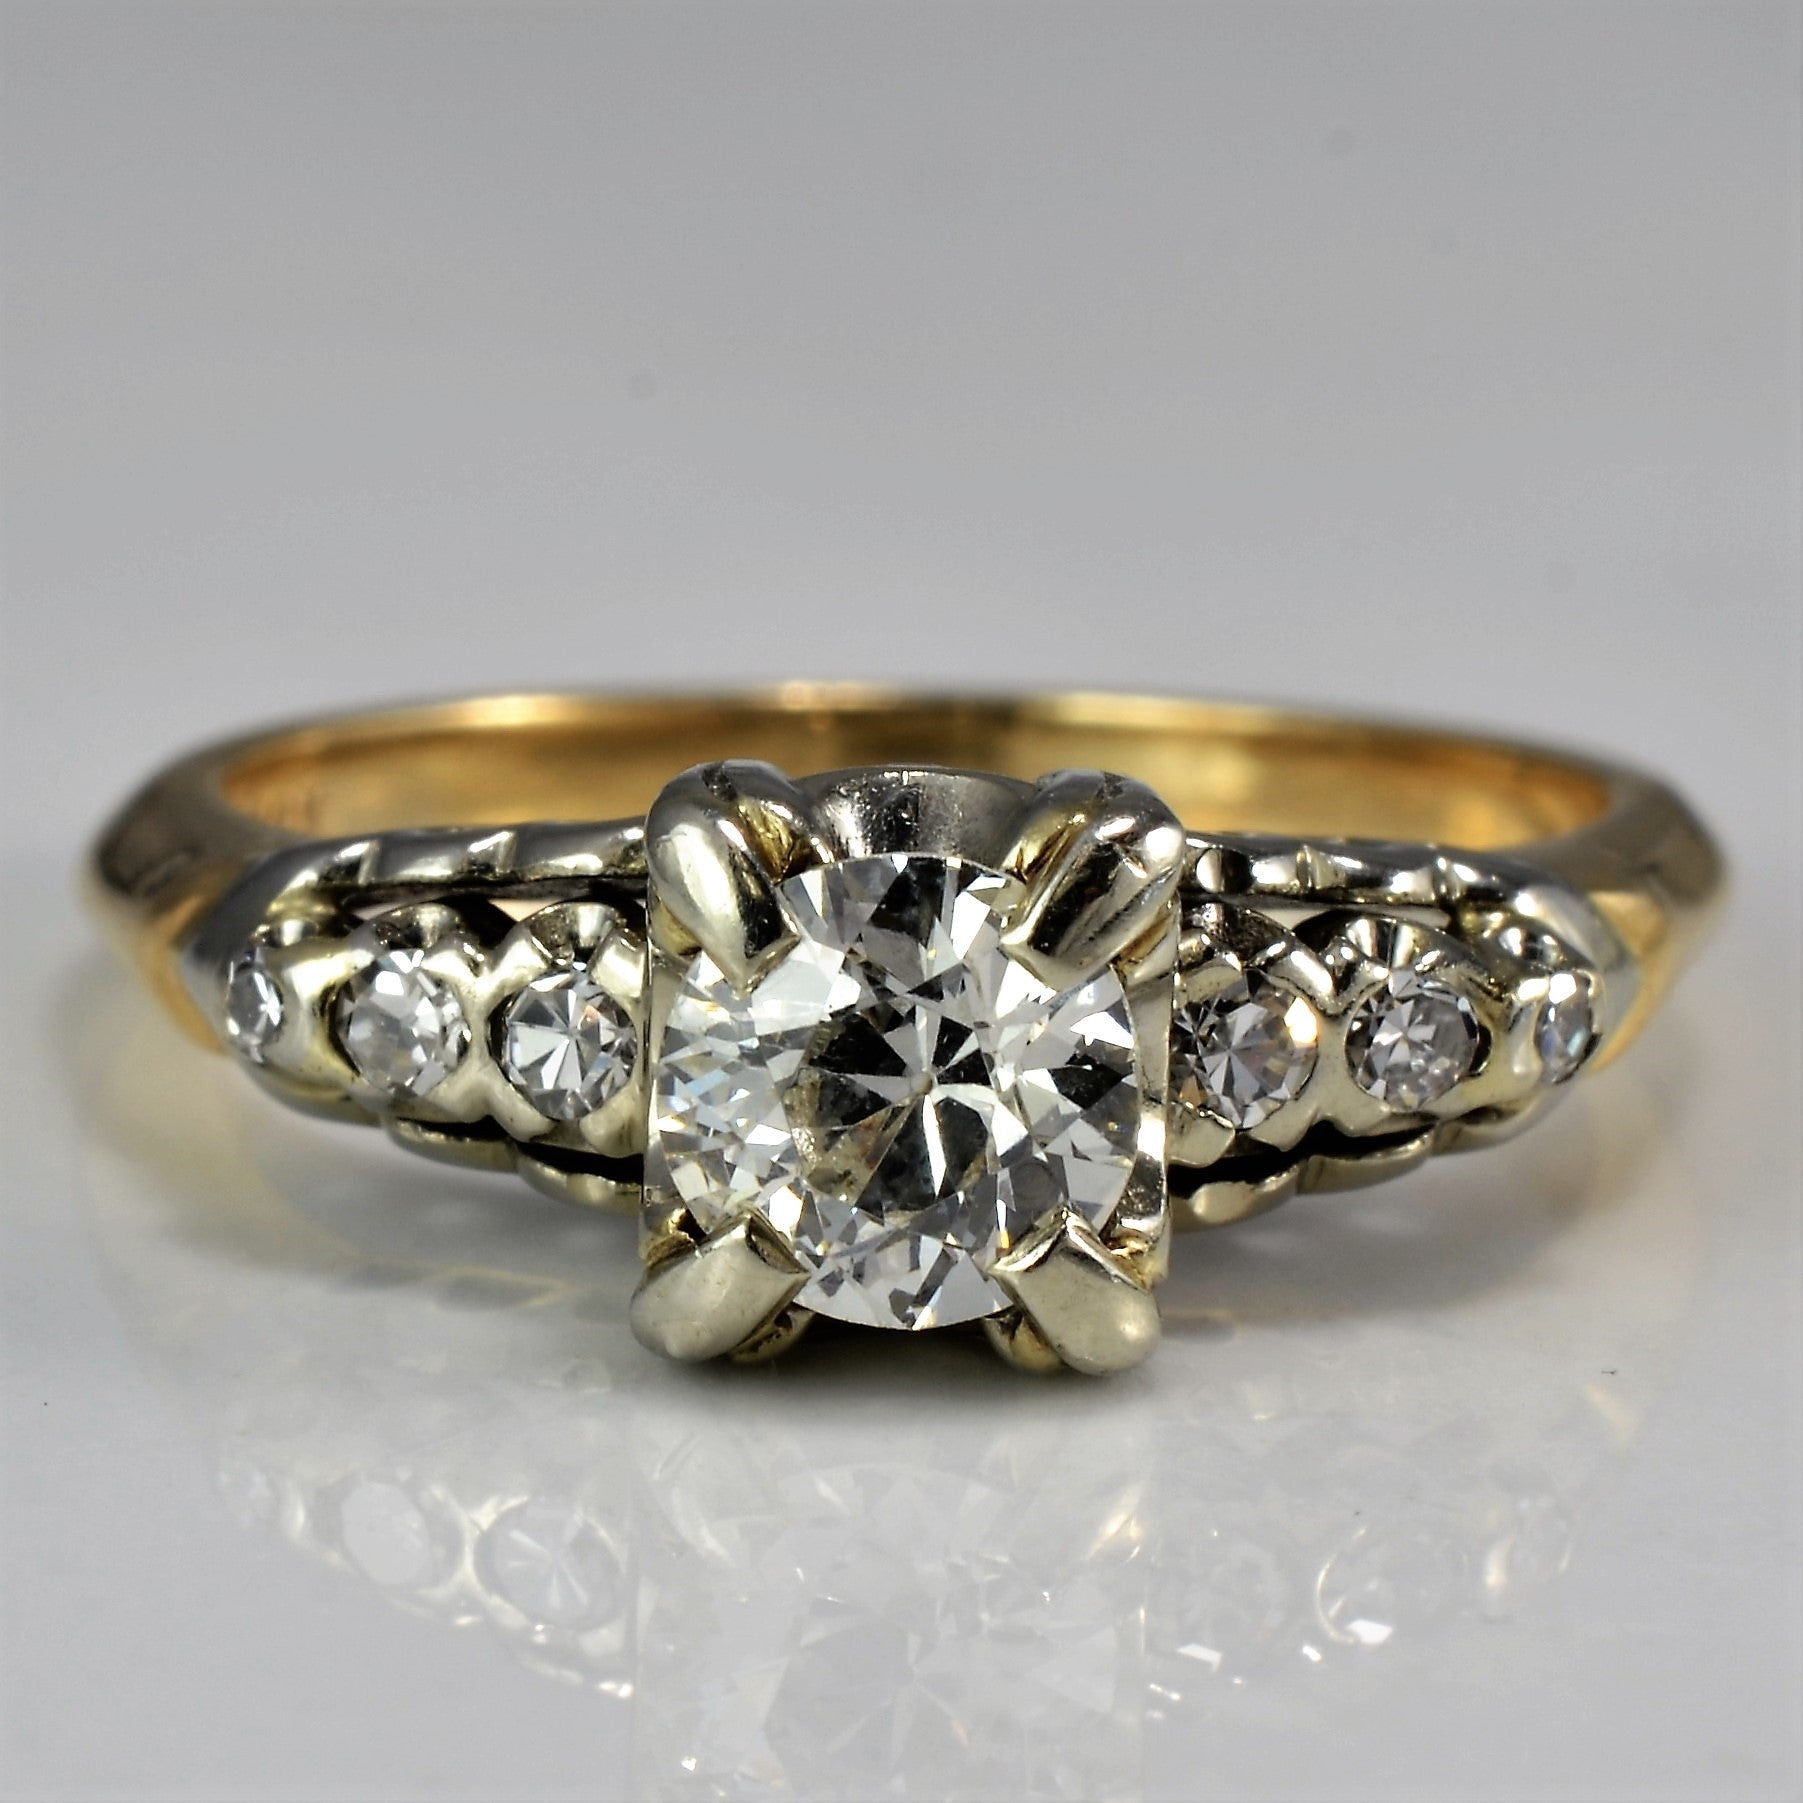 pin faq ageless diamonds european cuts what is old cut diamond rings an engagement heirlooms